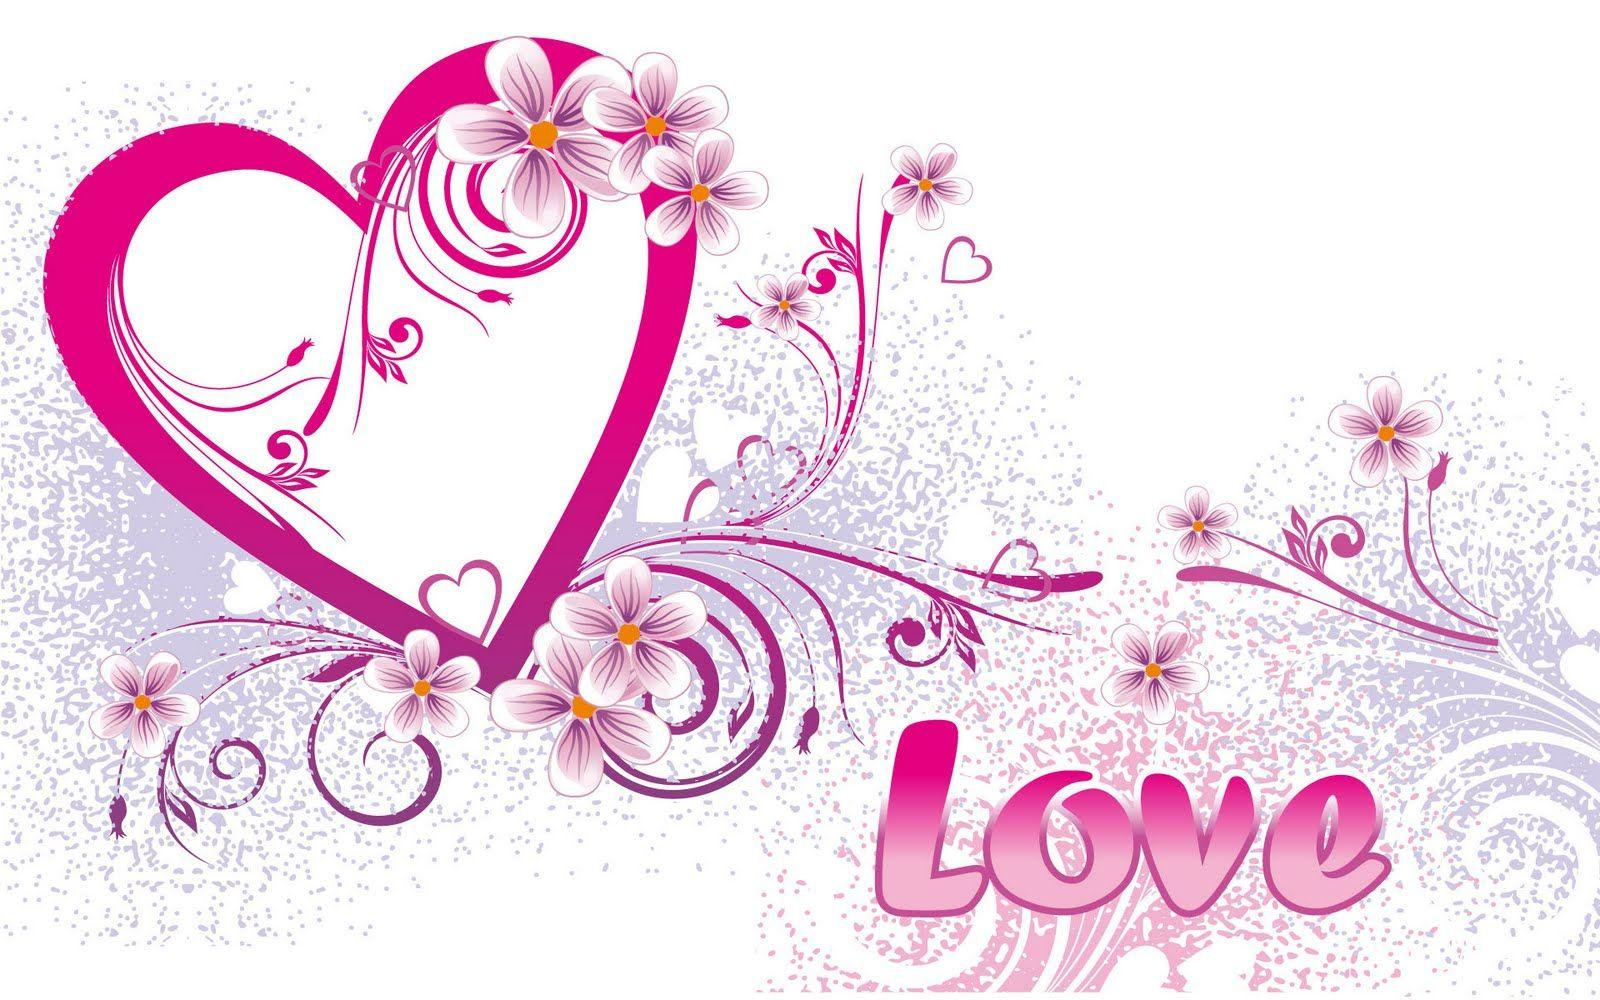 1080+ S Name Romantic Wallpaper HD Terbaik